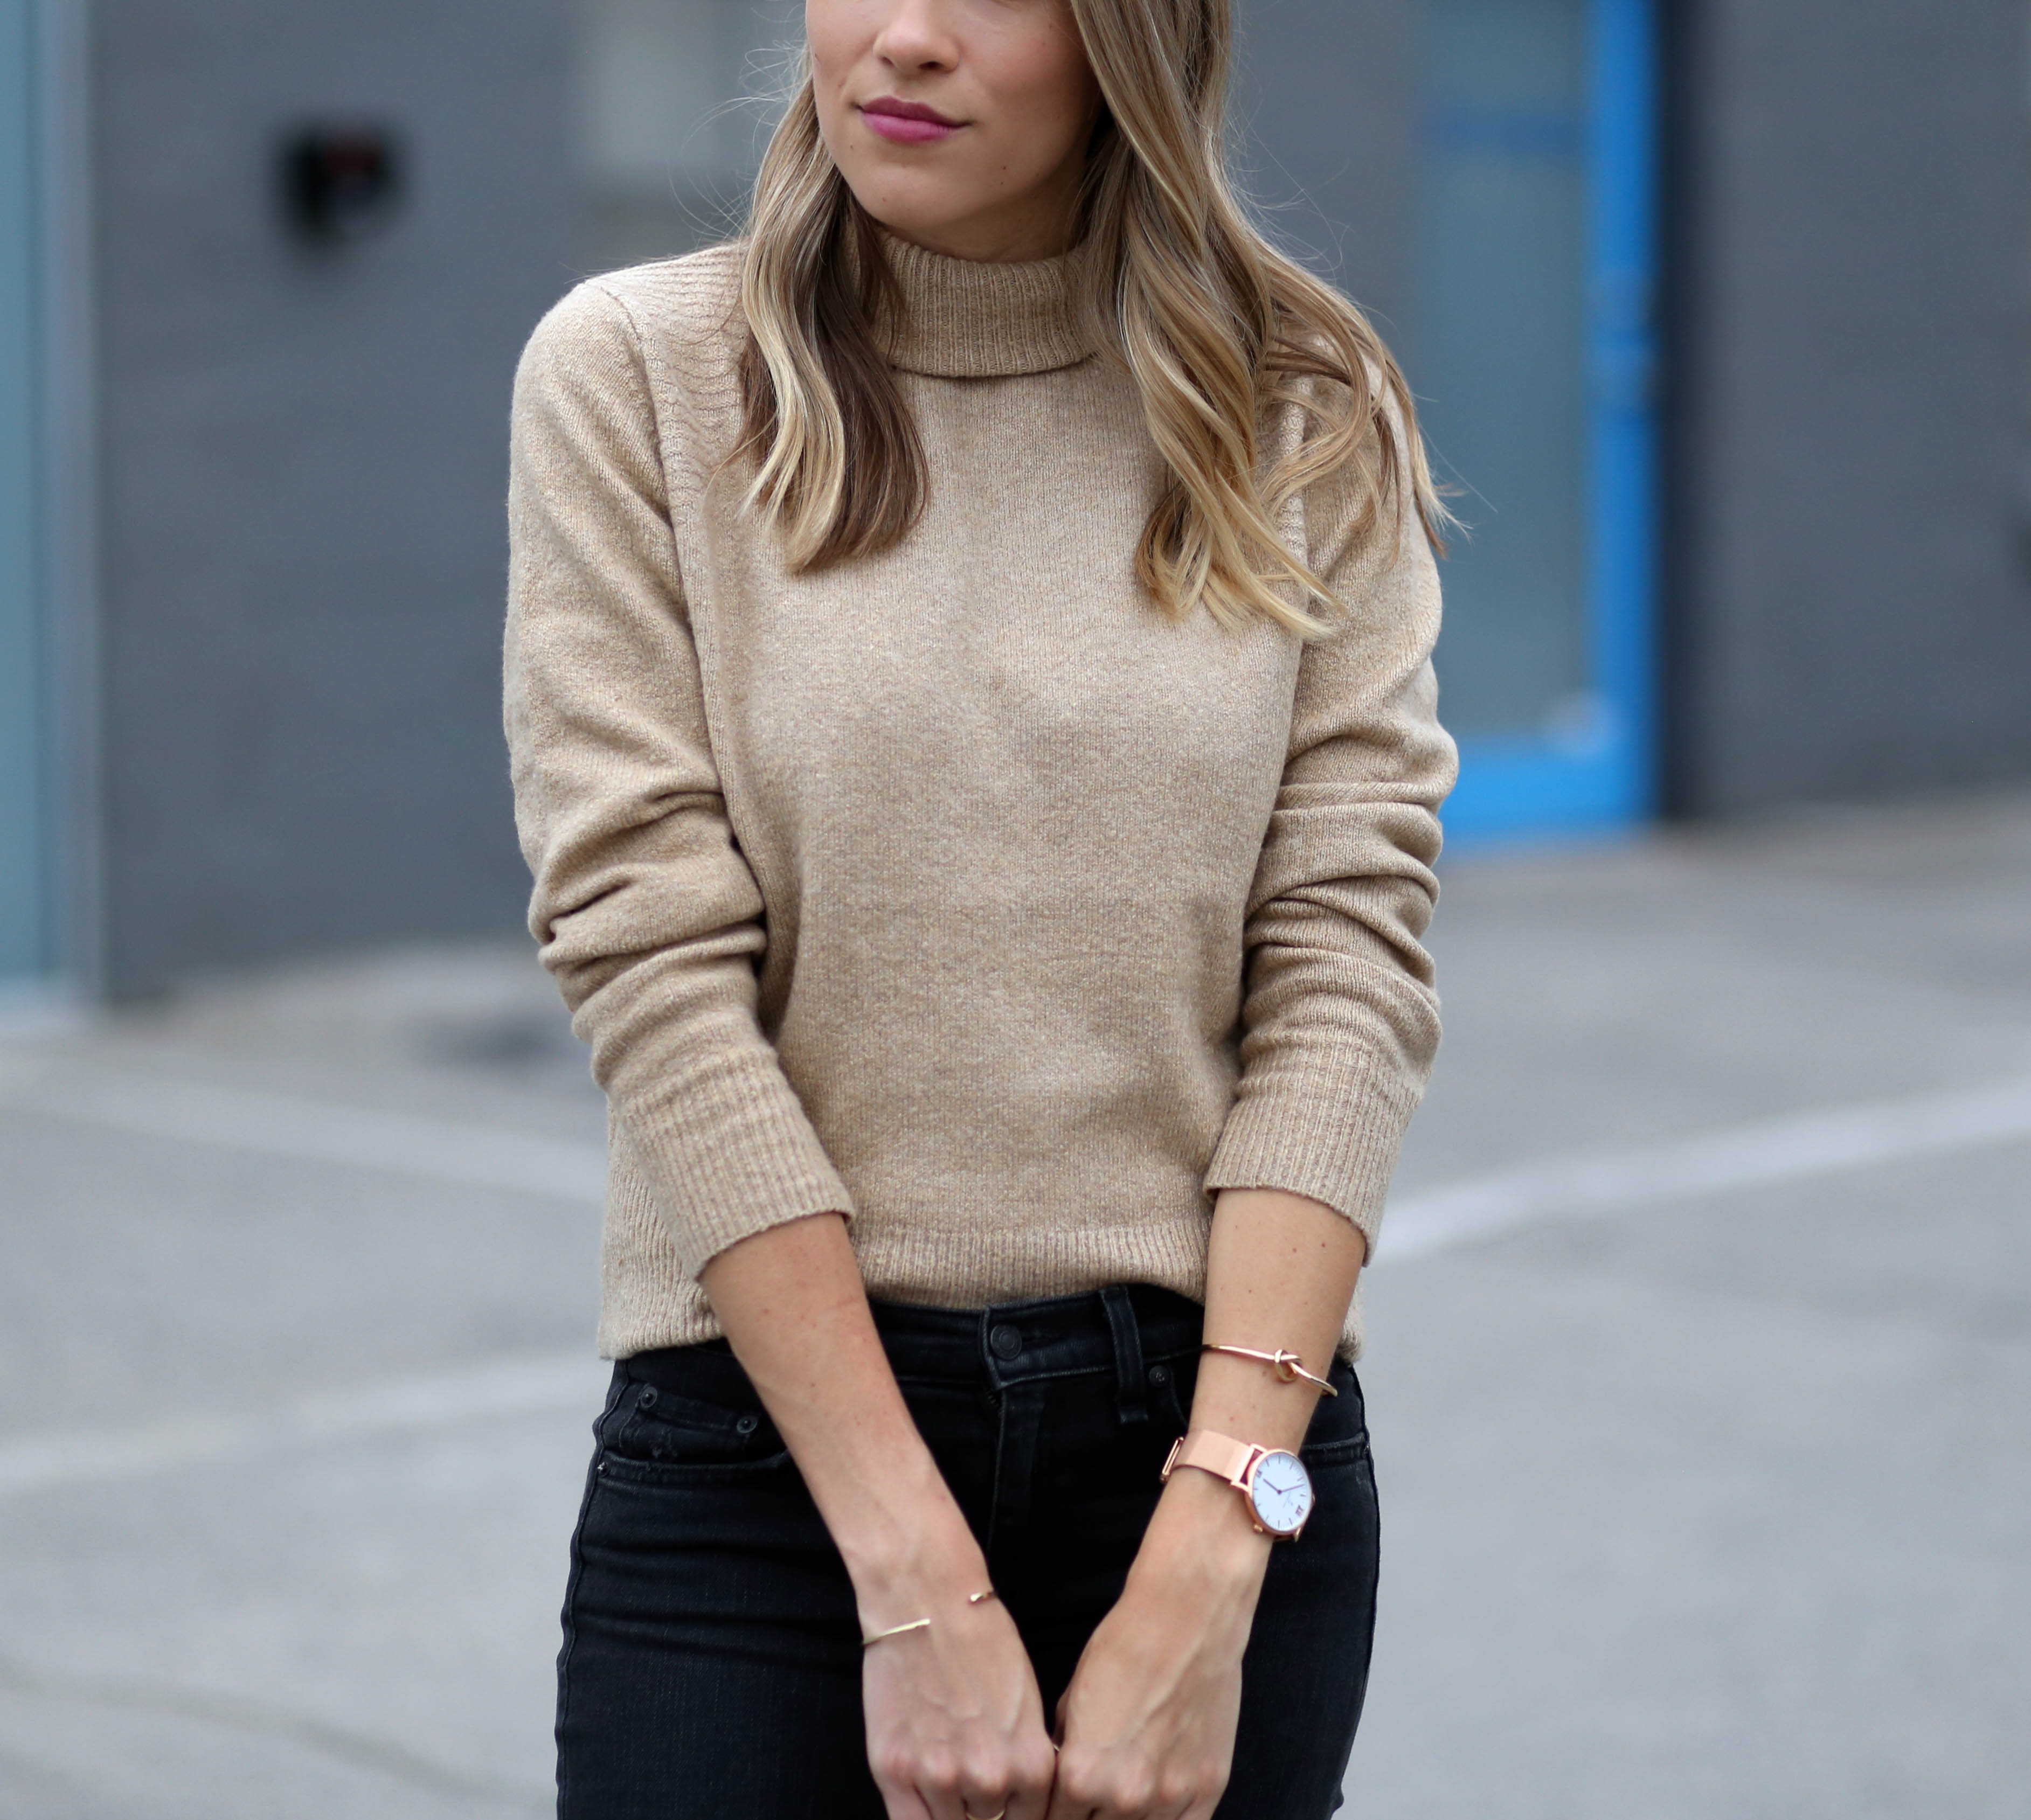 Warm, earthy tones for Fall | Adorned With Love